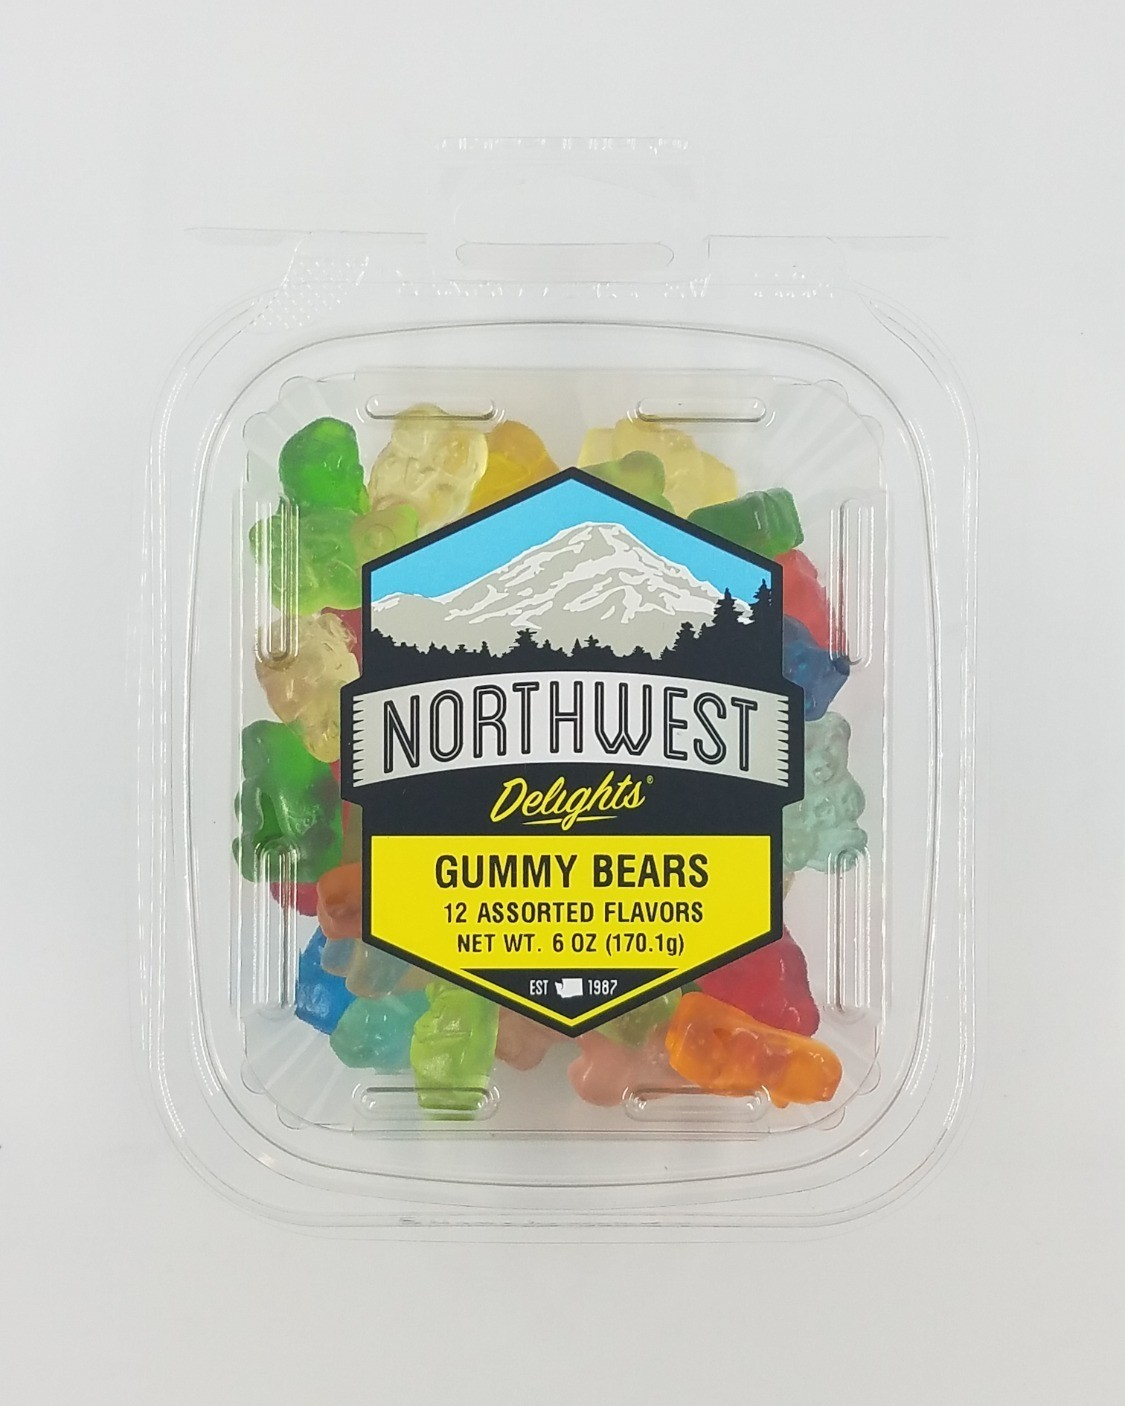 Gummy Bears, 12 Assorted Flavors, 6/12 oz Case